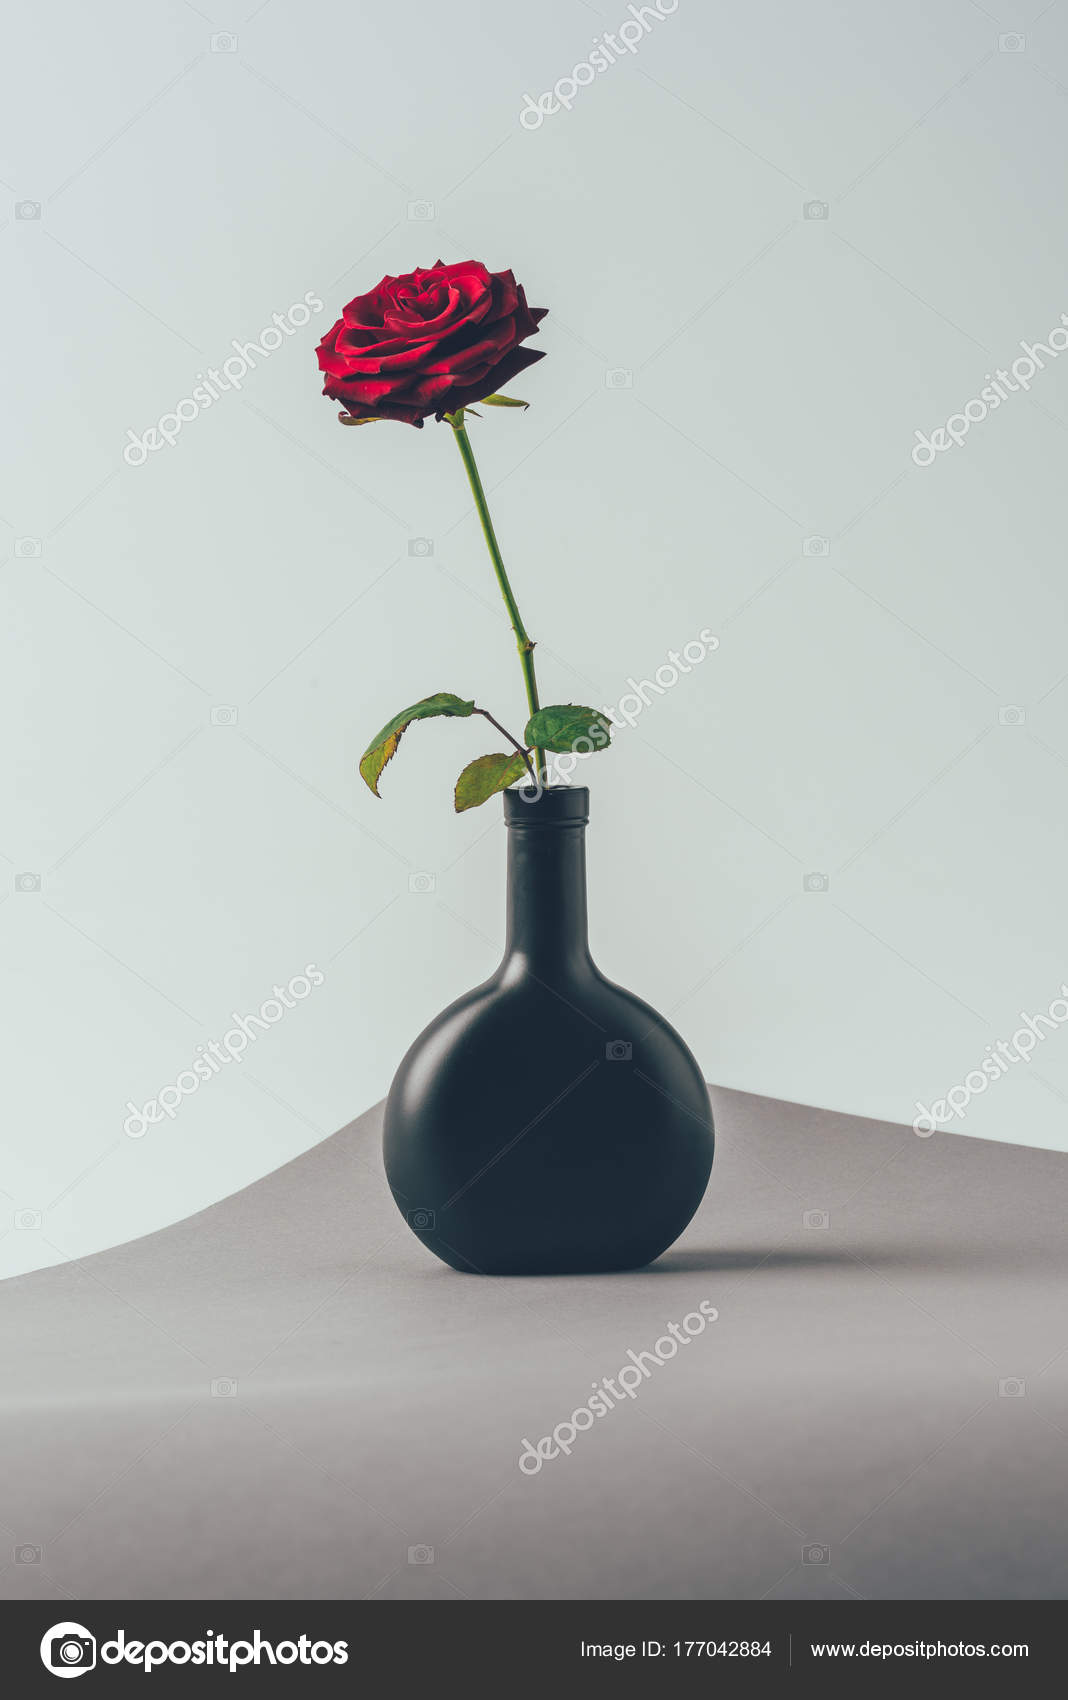 Red Rose Black Vase Gray Surface Valentines Day Concept Stockfoto